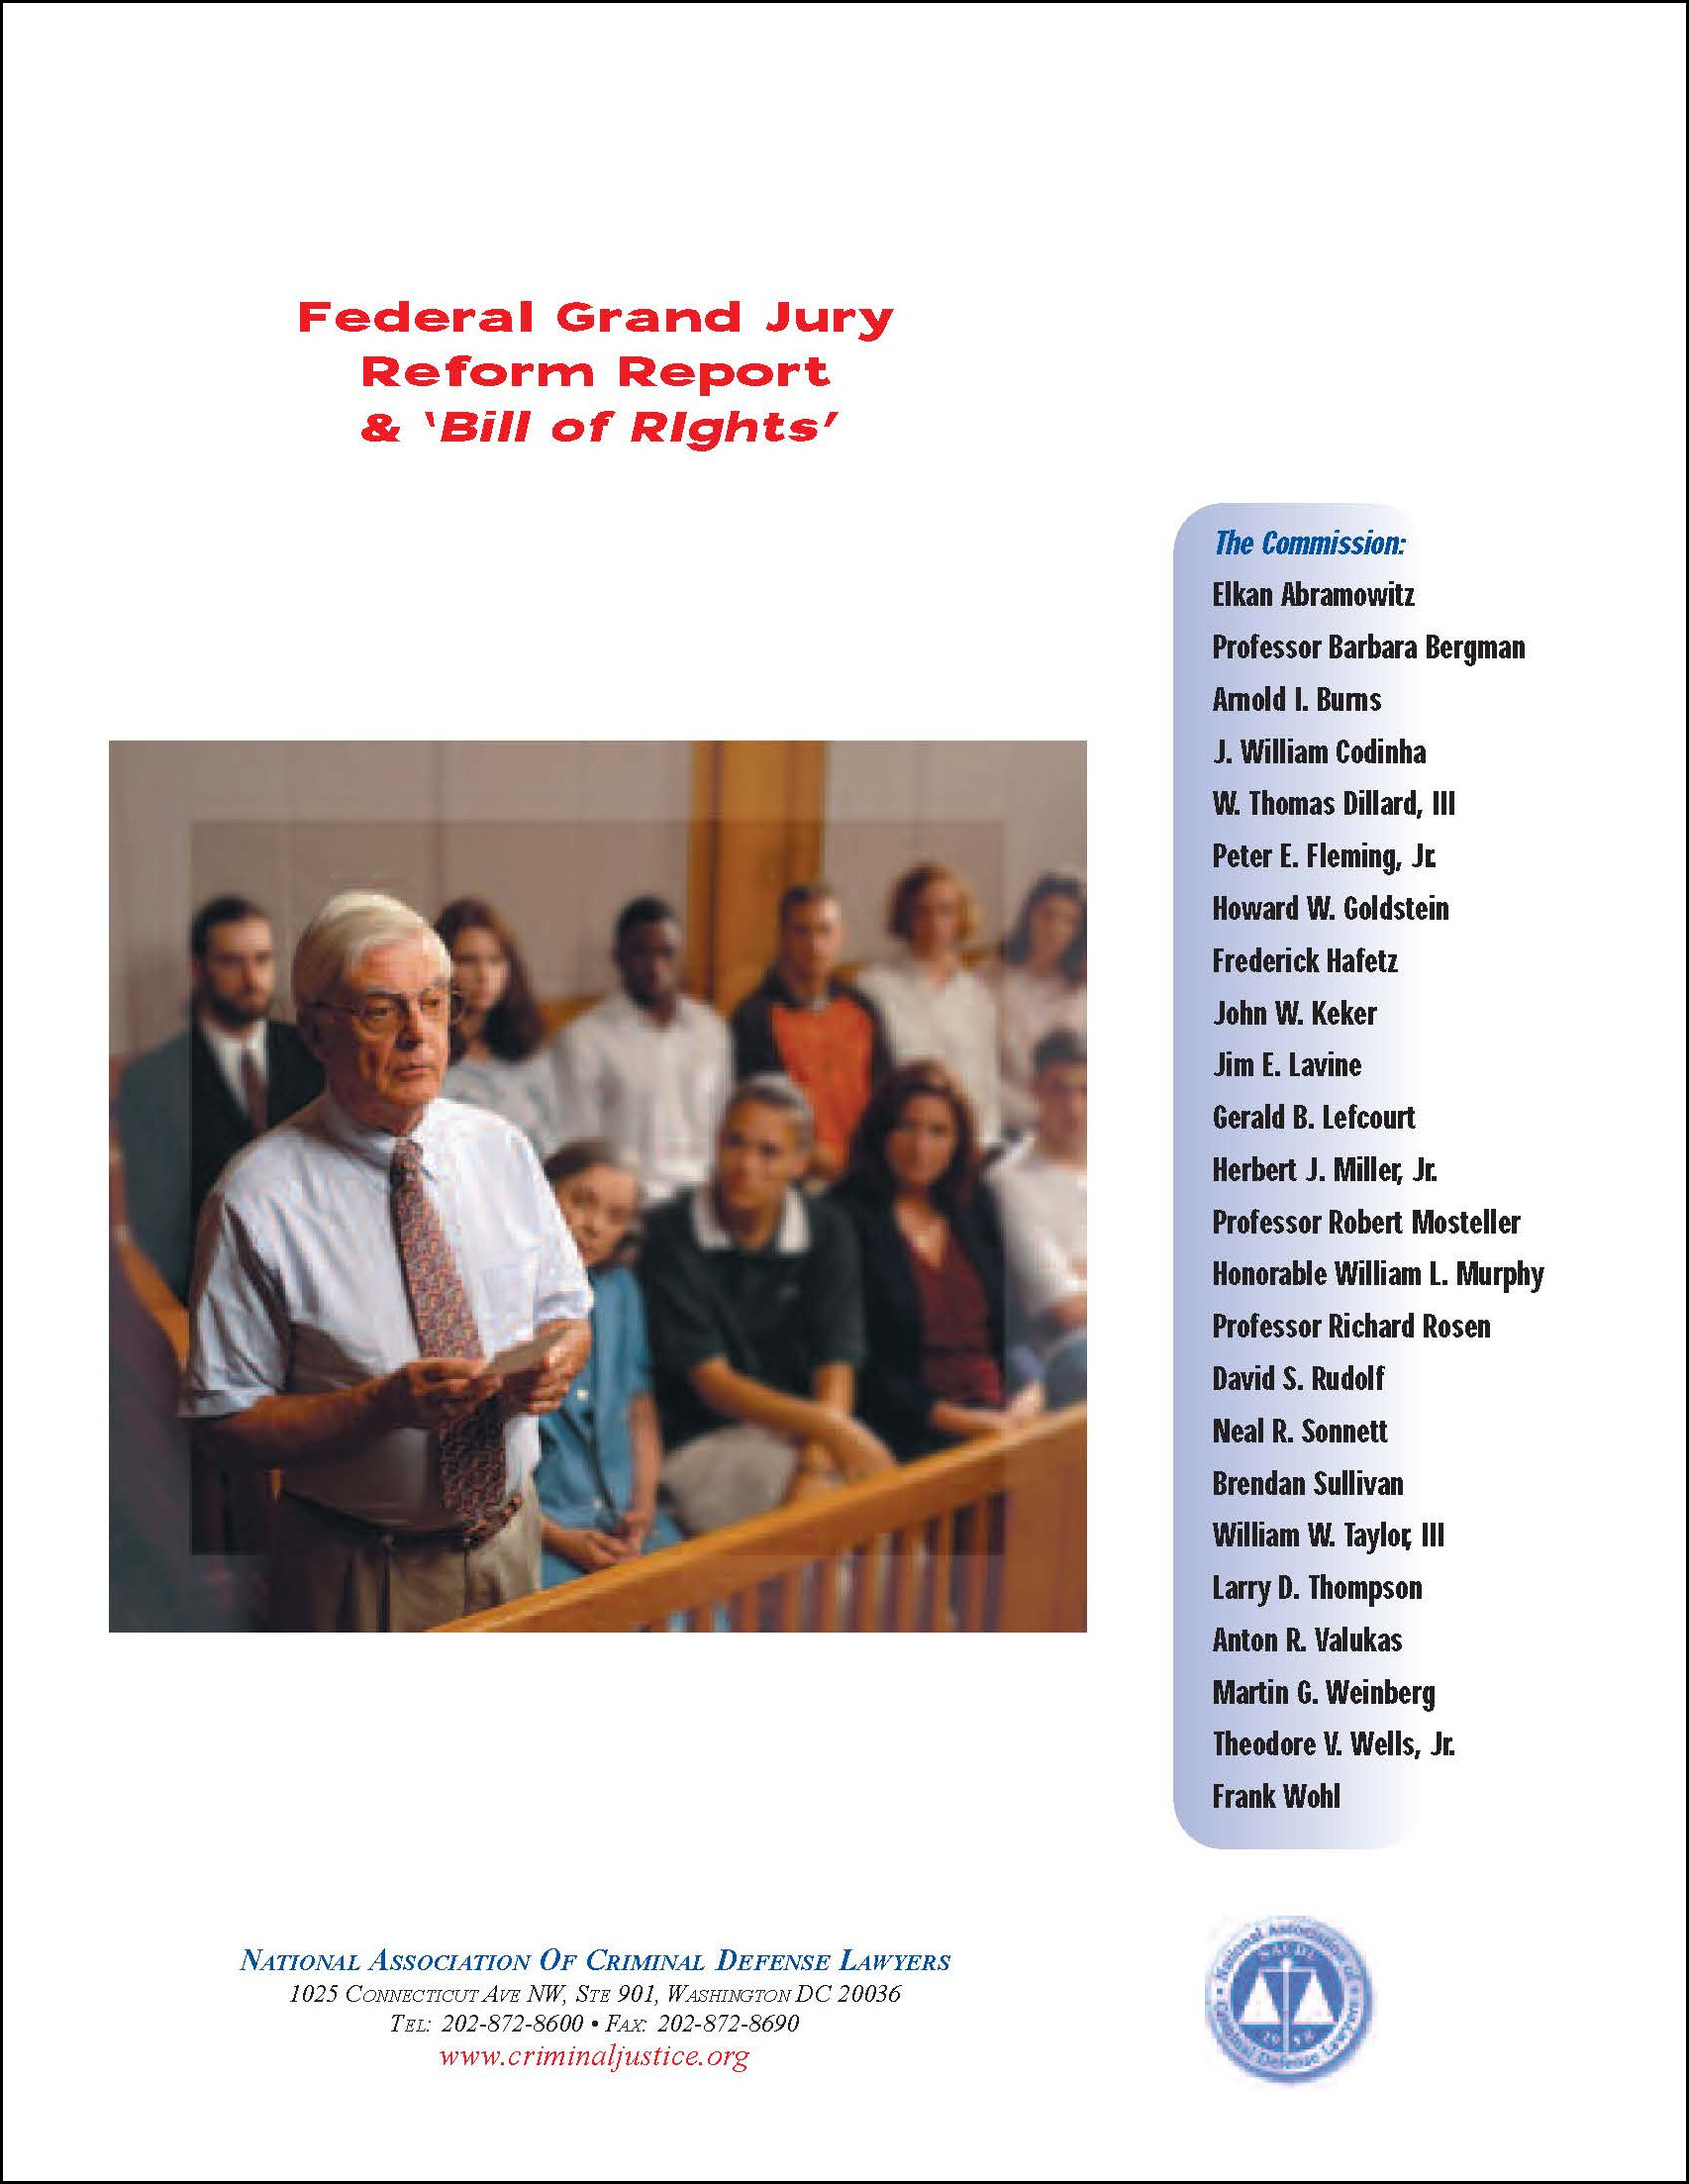 Federal Grand Jury Reform Report & Bill of Rights Cover